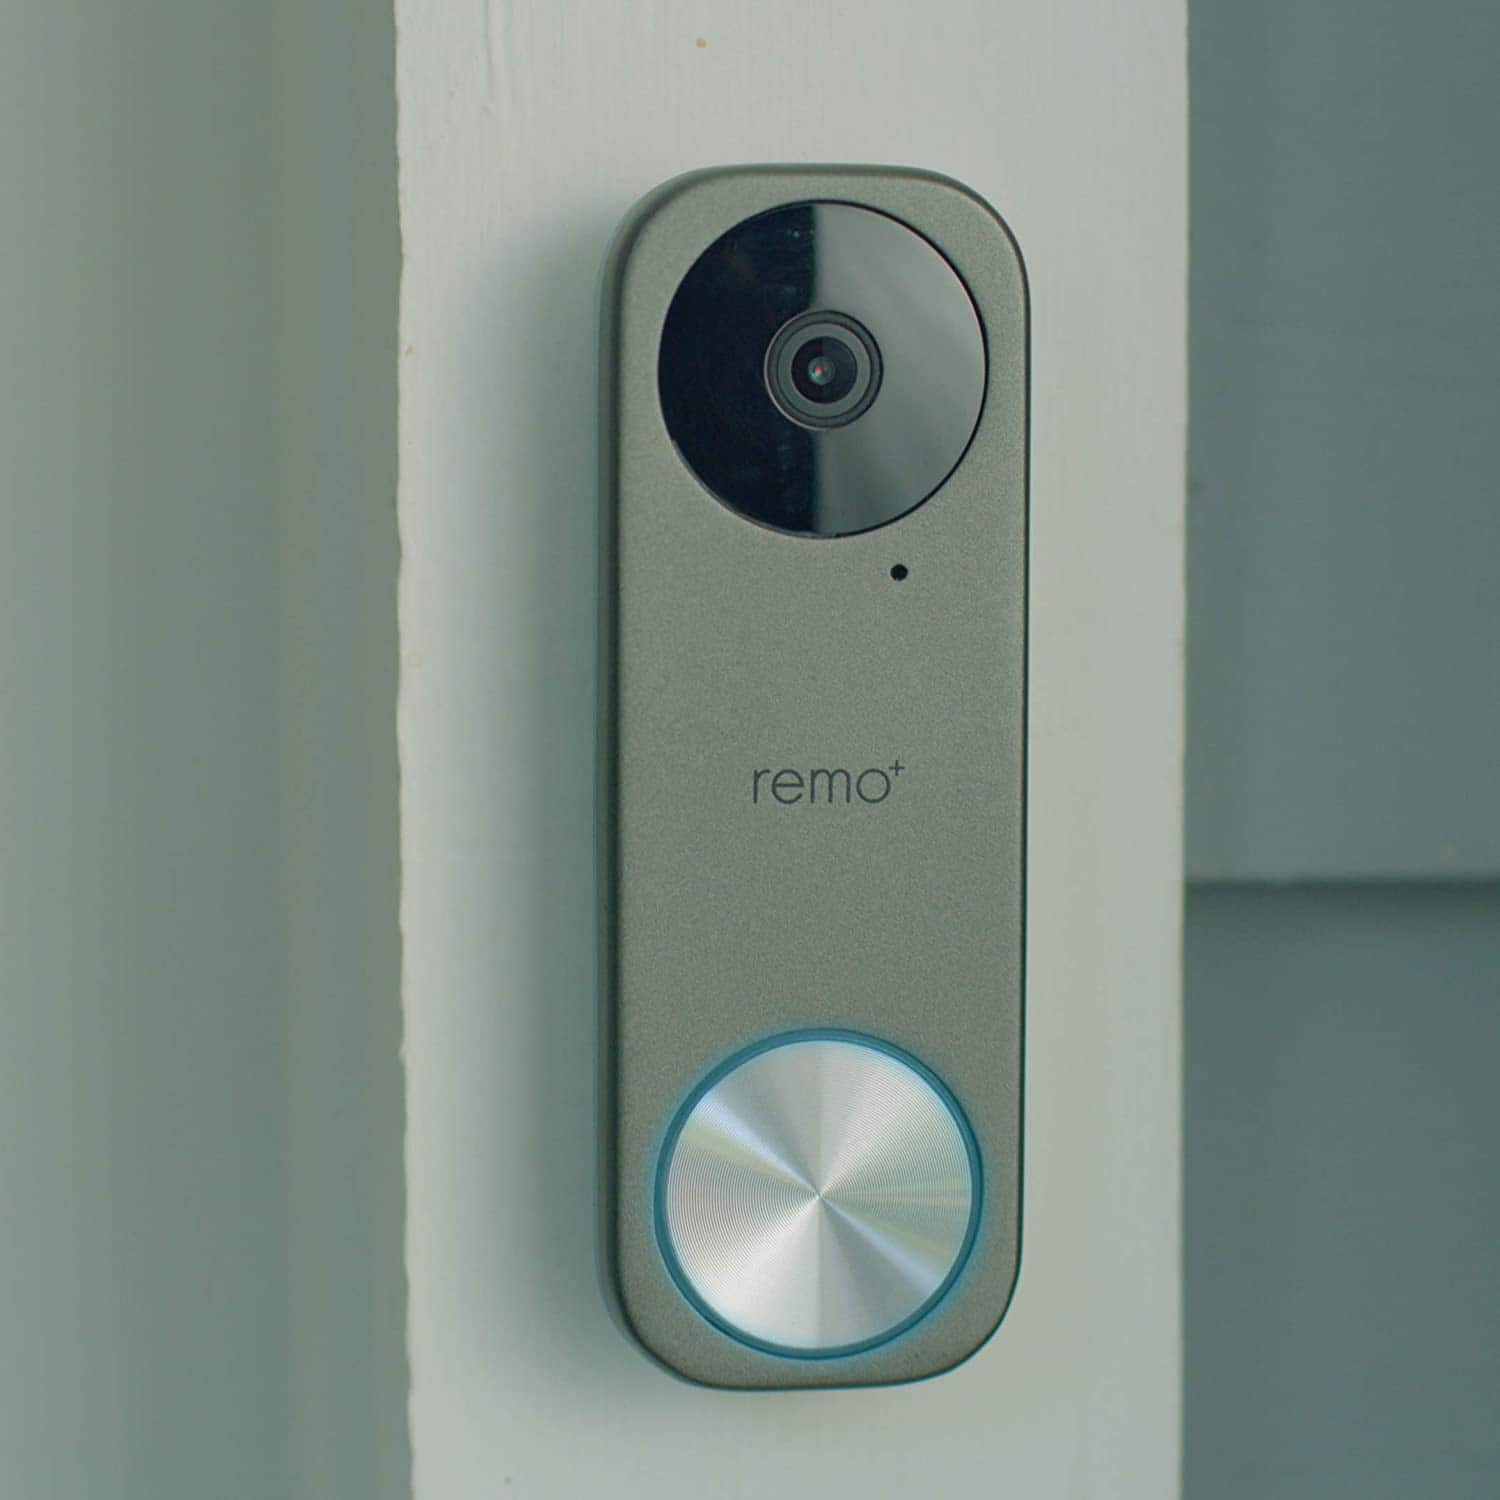 Remo+ RemoBell S Video Doorbell @ Amazon $85